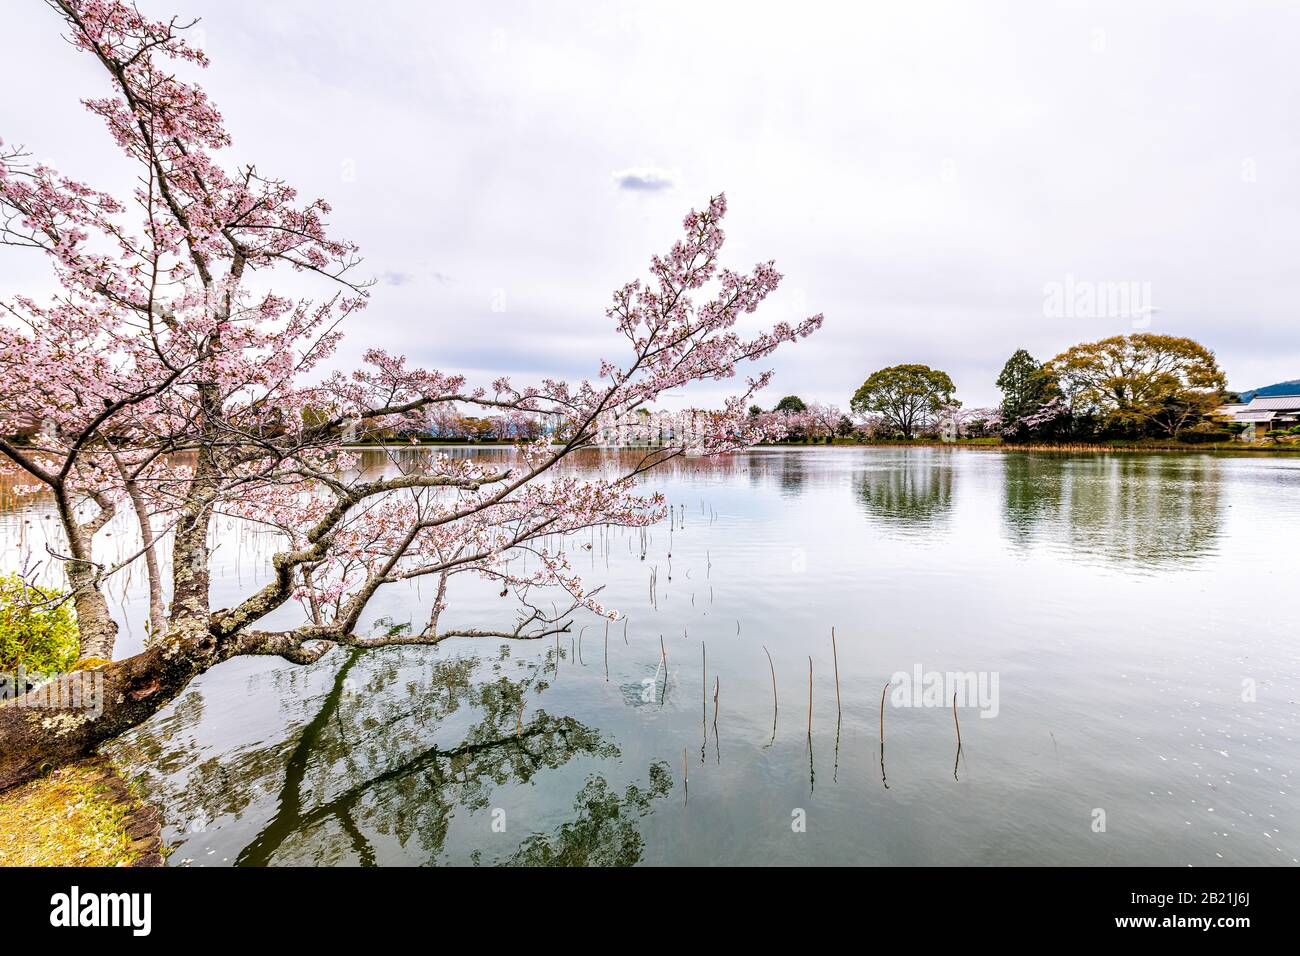 Kyoto, Japan cherry blossom tree by Osawa-no-Ike pond lake in spring in Arashiyama area by Daikakuji Temple with red traditional tour boat Stock Photo